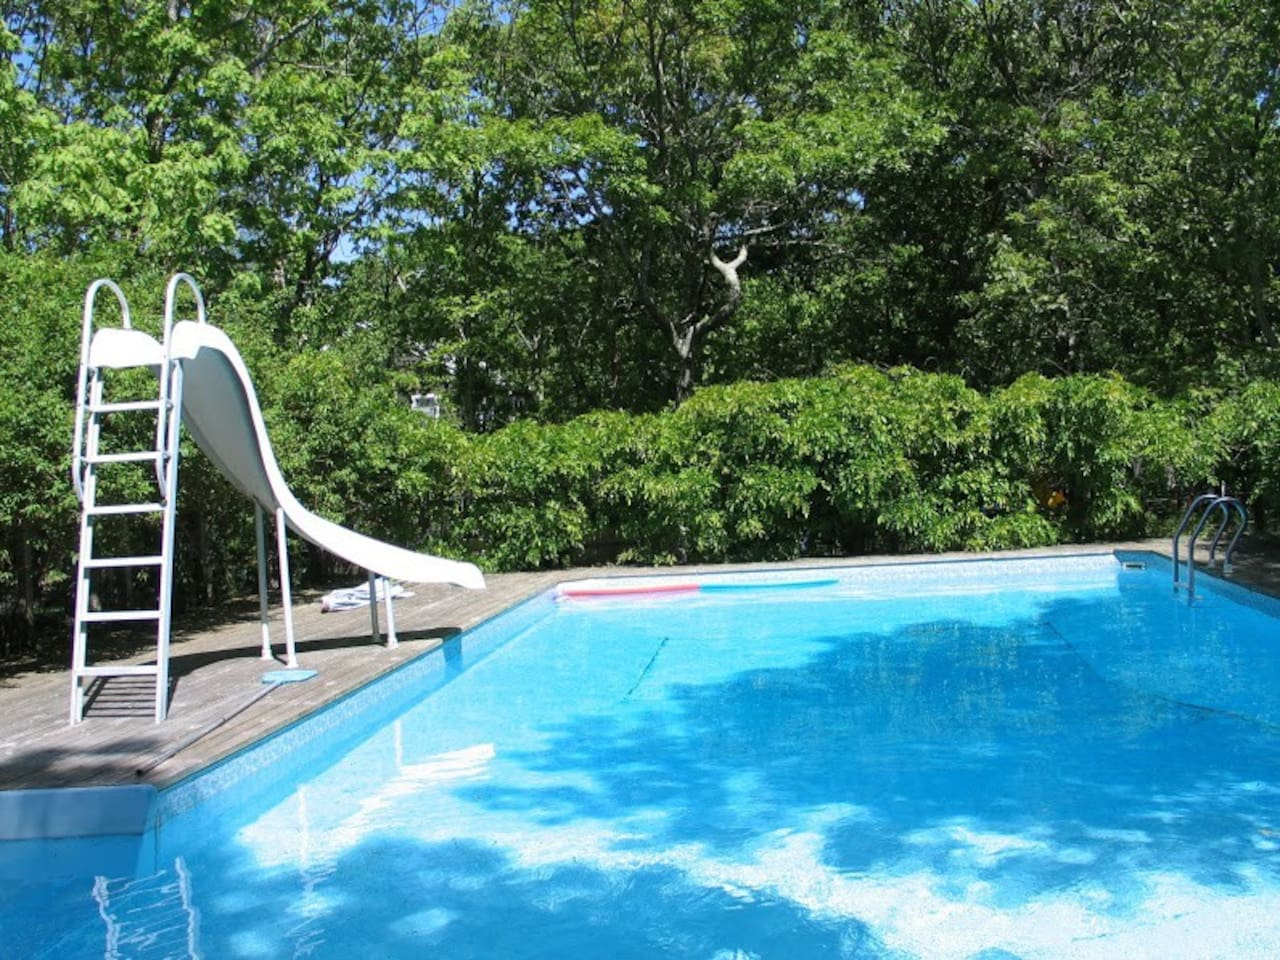 Heated swimming pool (20x40) with water-slide and child-proof fence.